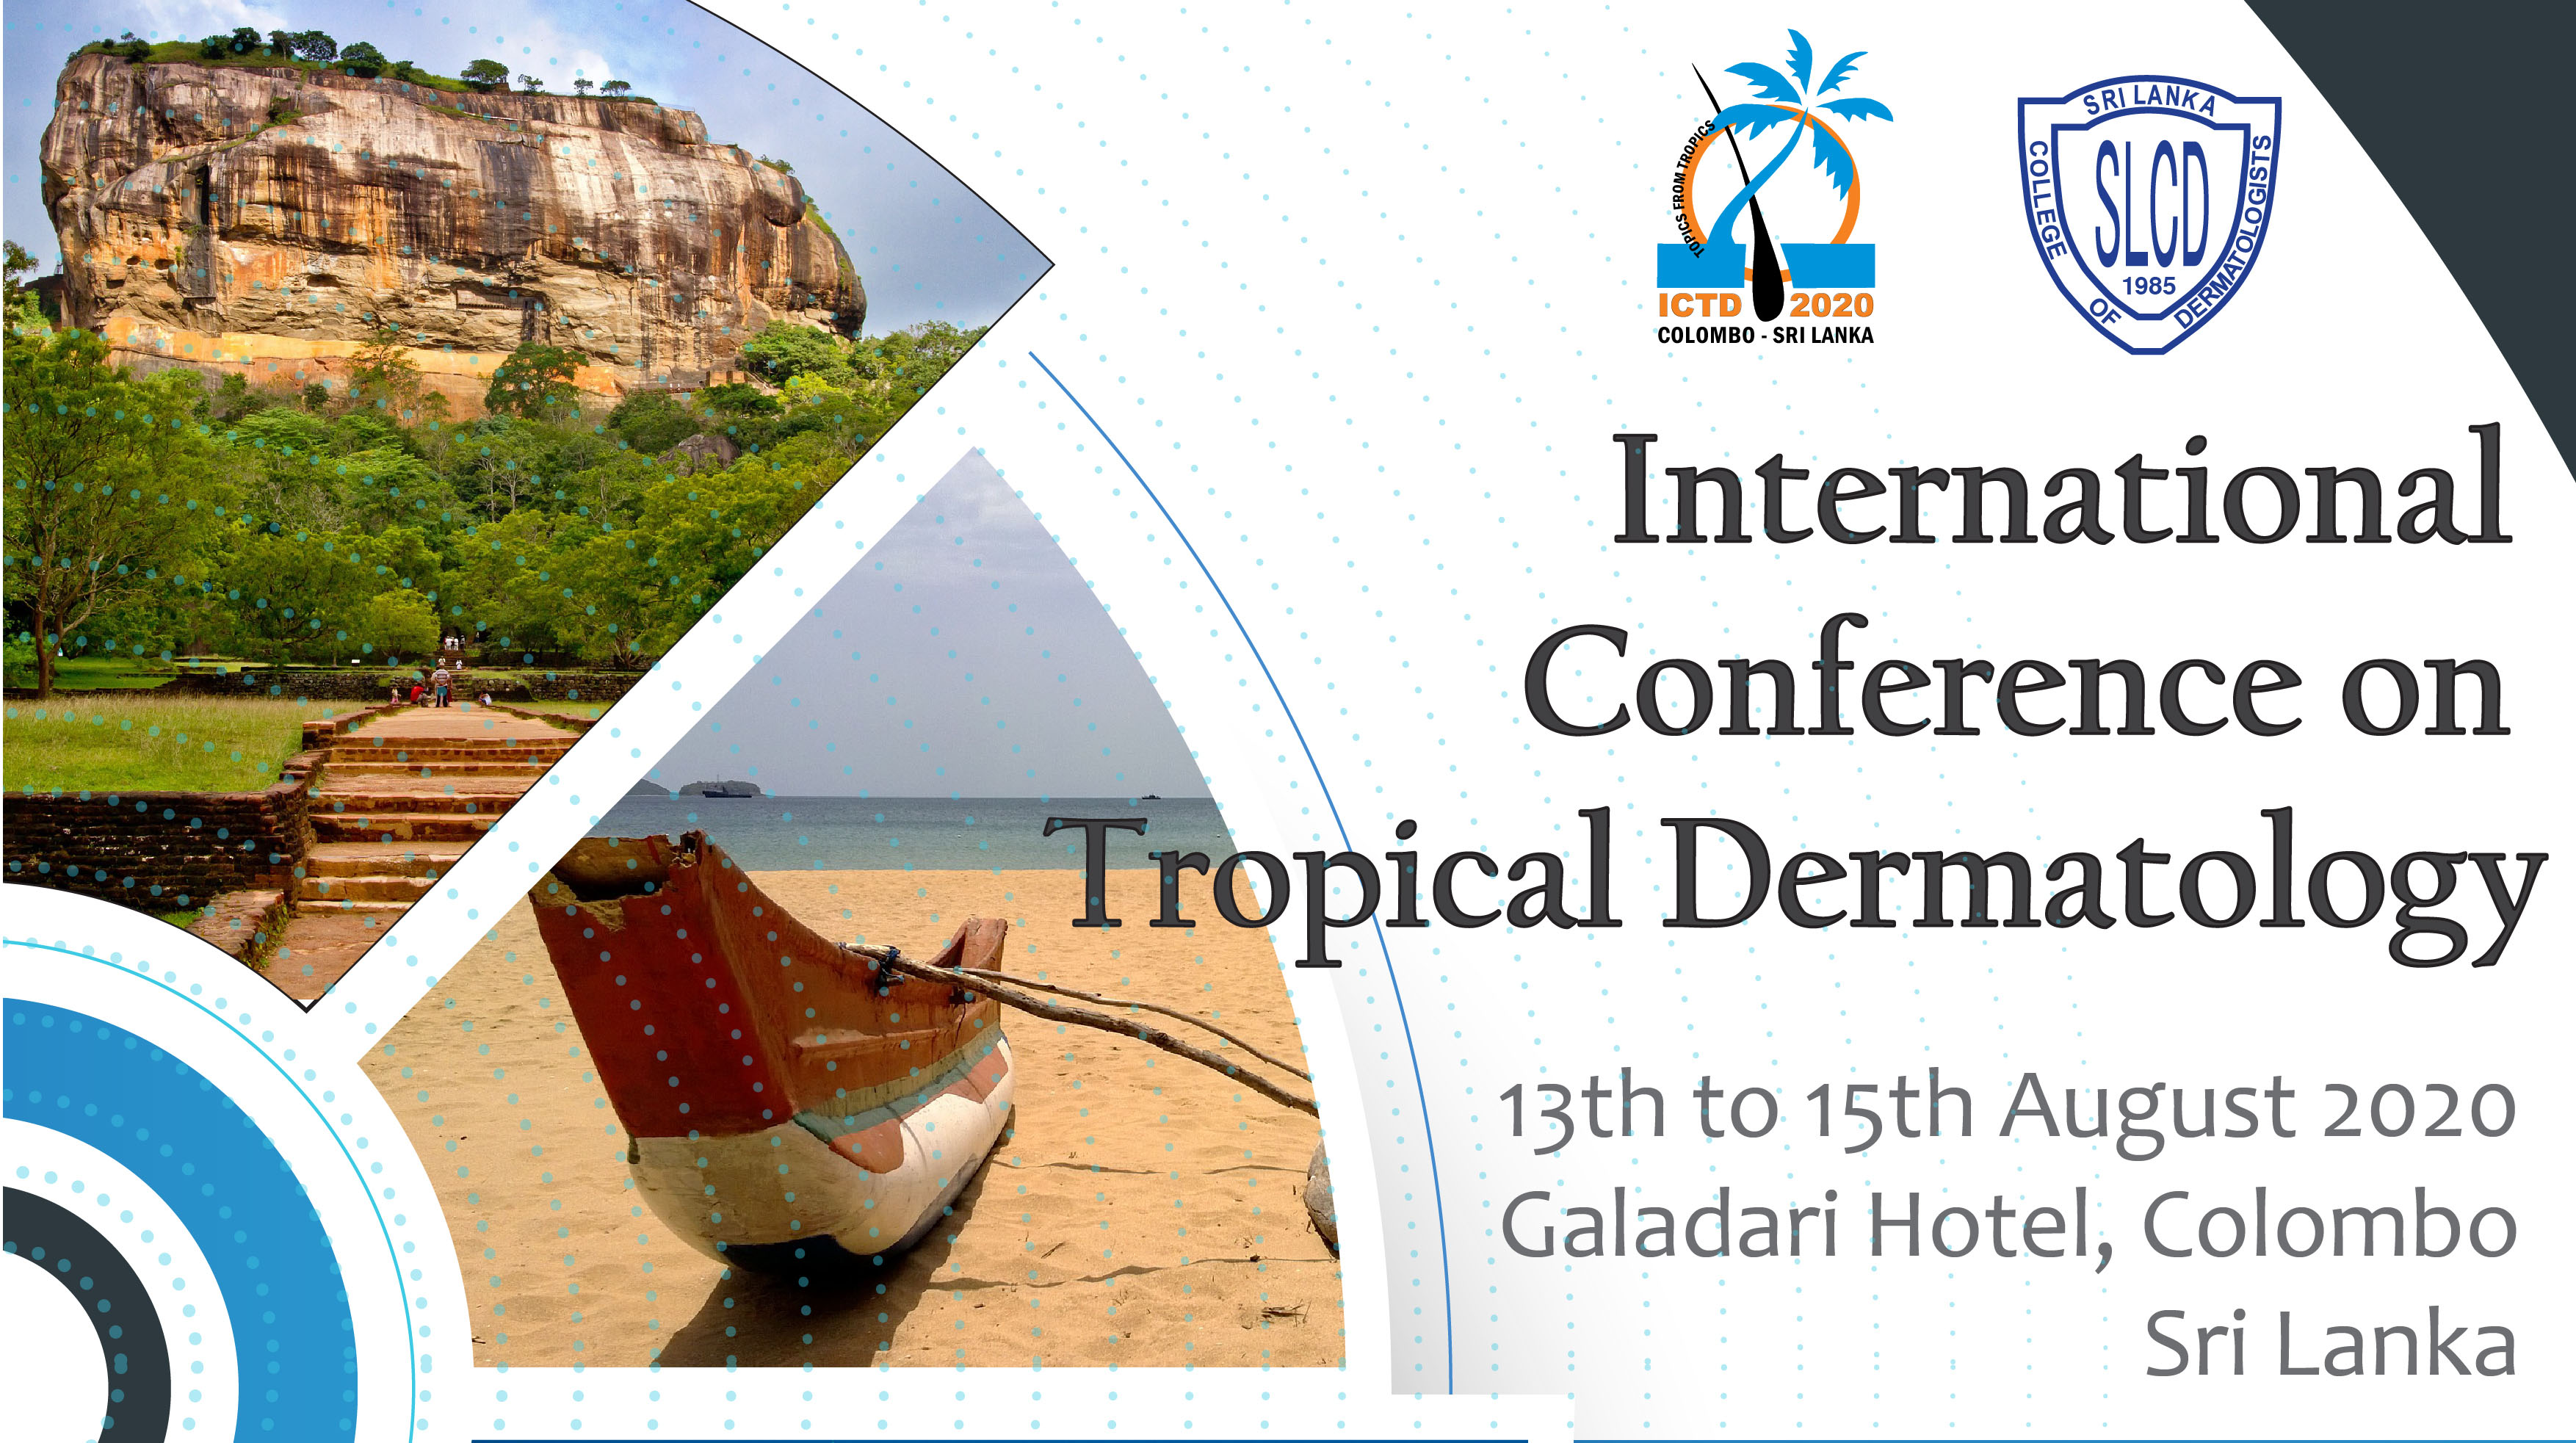 International Conference on Tropical Dermatology 2020